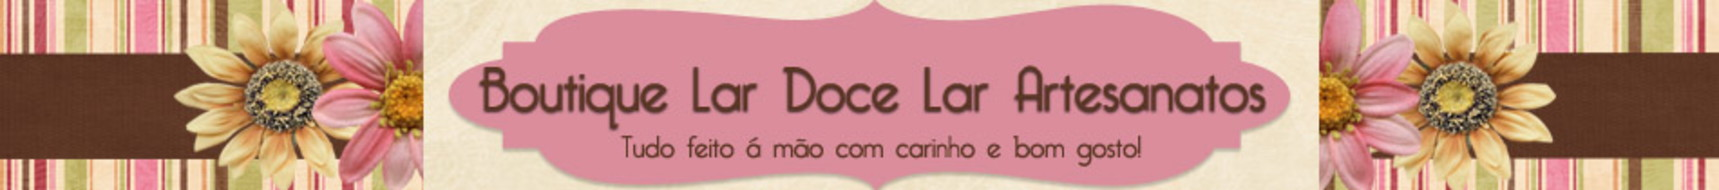 Boutique Lar Doce Lar Artesanatos, decoupagem, kit,